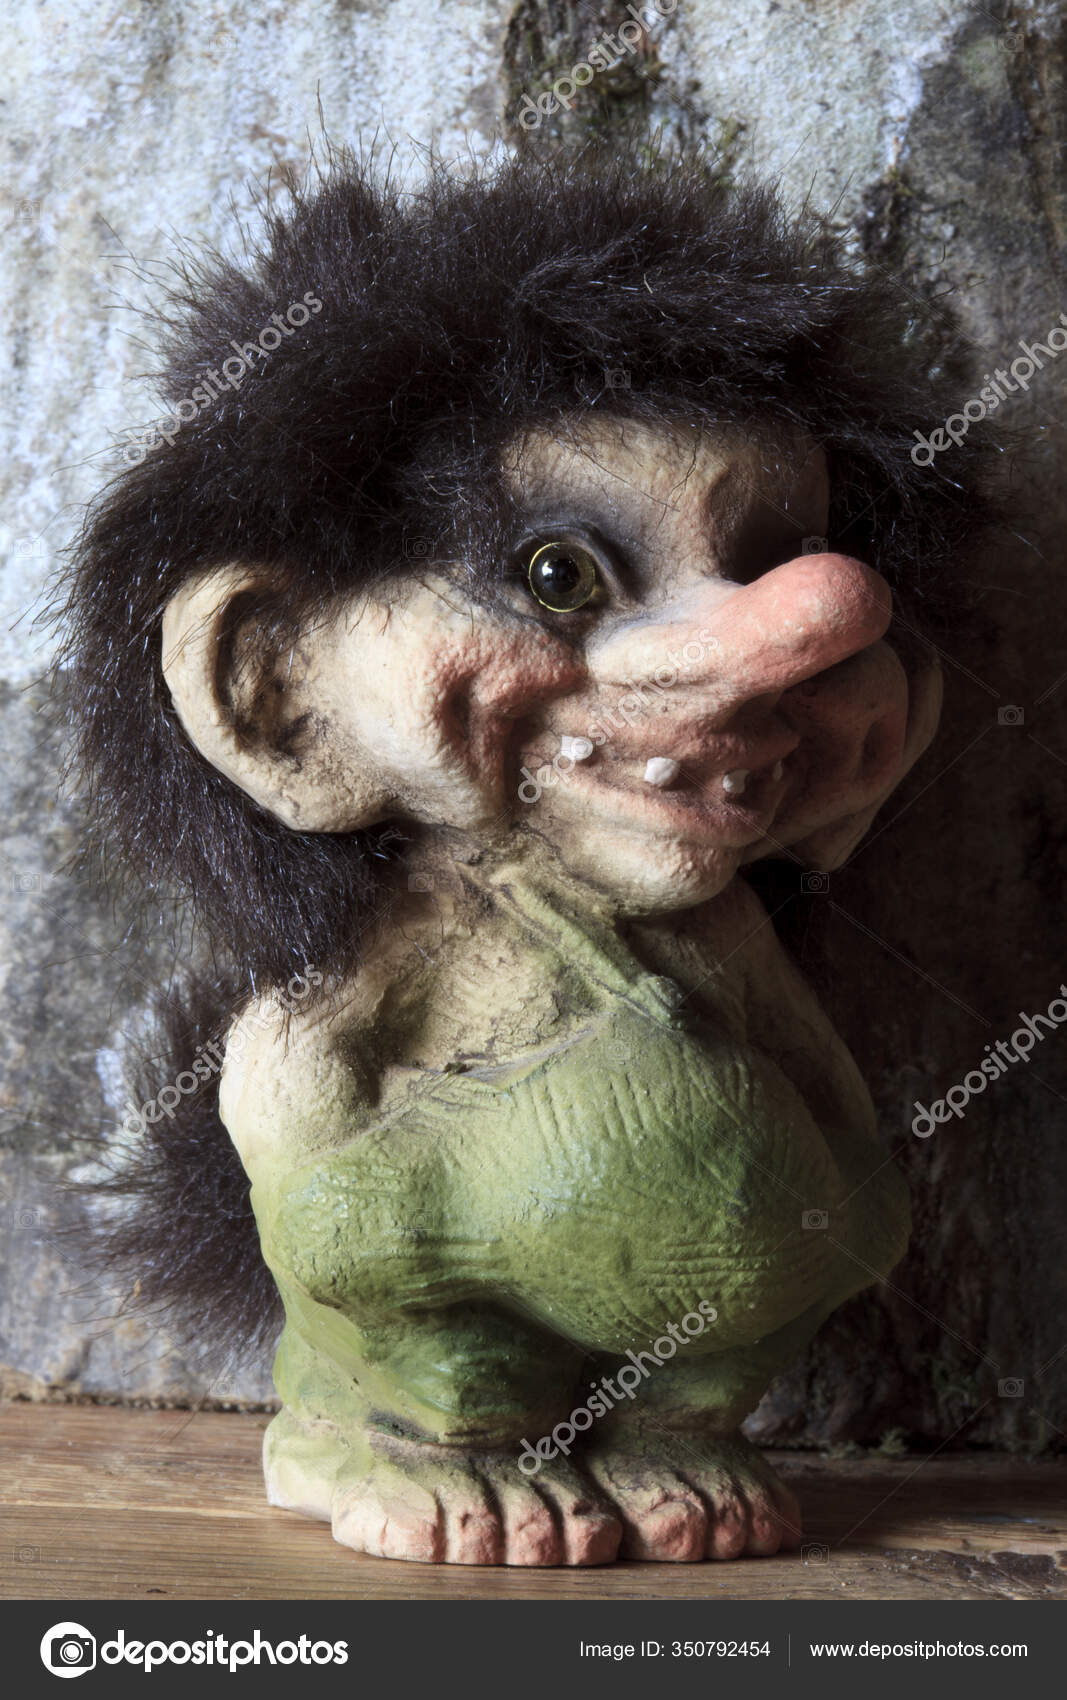 Norwegian Trolls Souvenirs Sale Gift Shop Norway Europe Stock Editorial Photo C Paologiovanni61 350792454